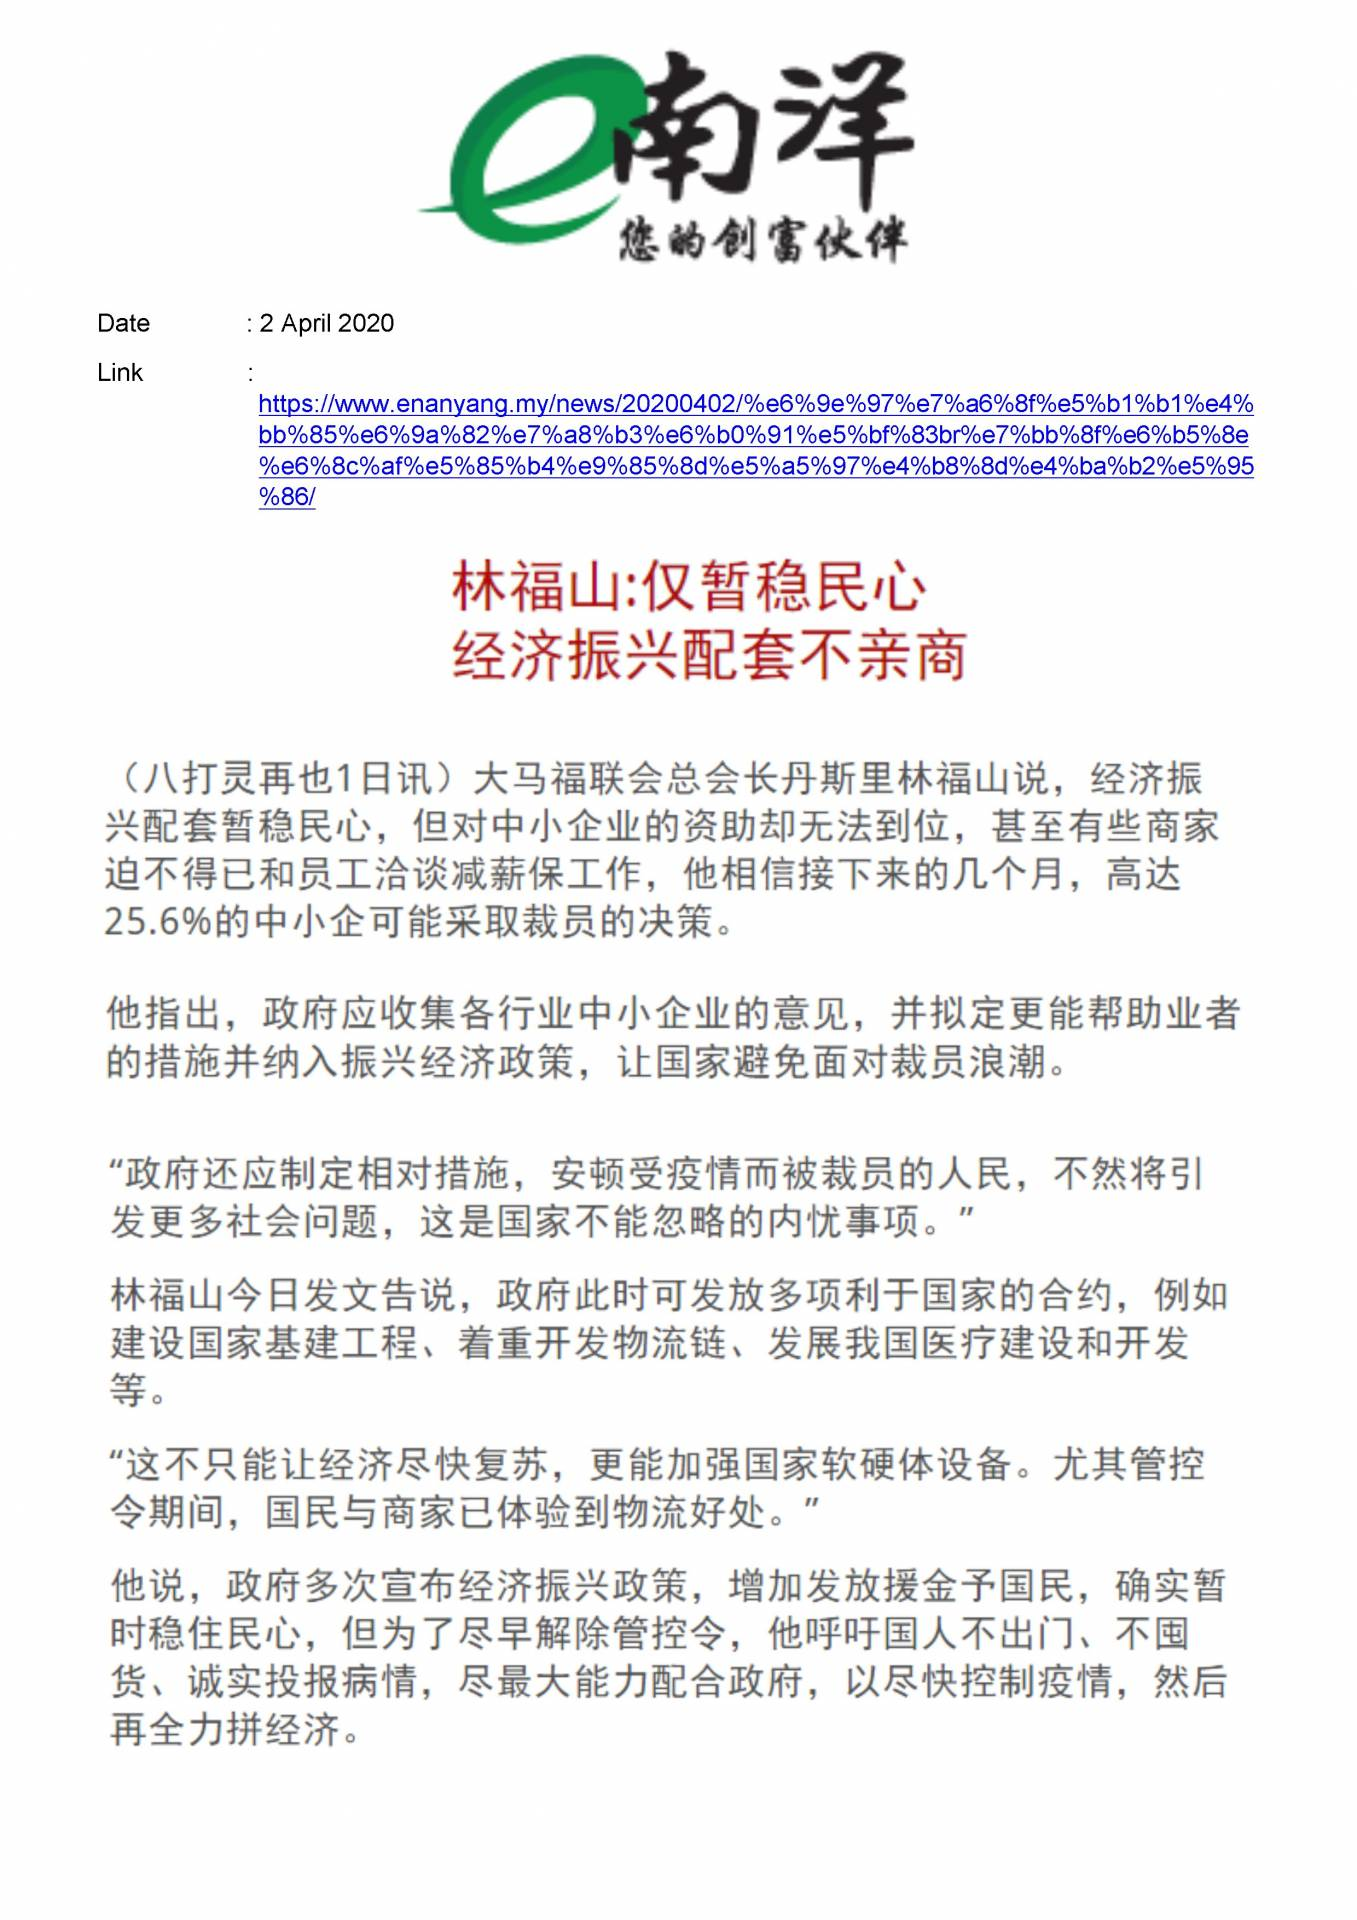 2020.04.02 Nanyang Online - Lim Hock San said economic package is not pro-business